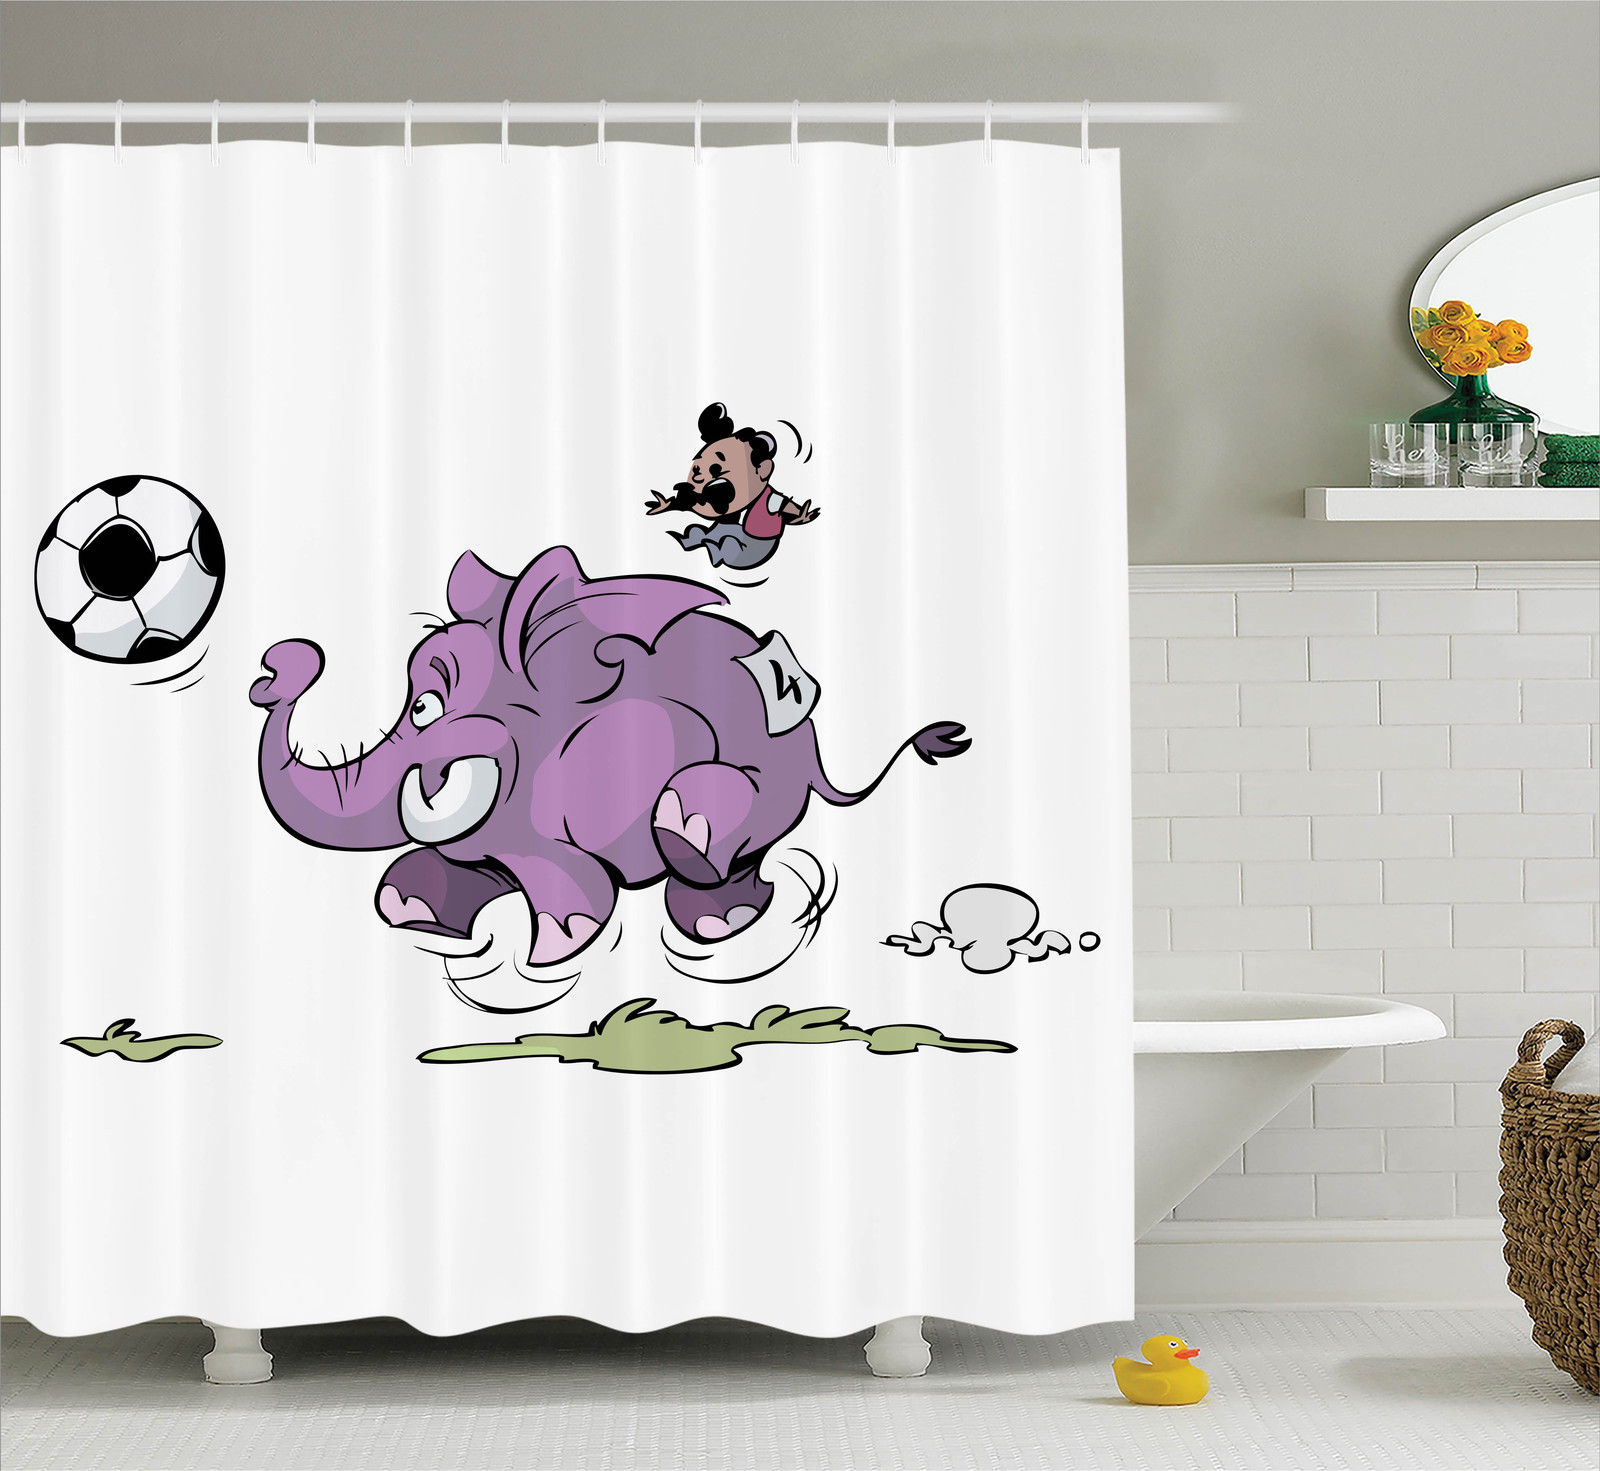 Elephants Decor Shower Curtain Set, Elephant Is Playing Soccer With A Kid  Mario Moustache Sports